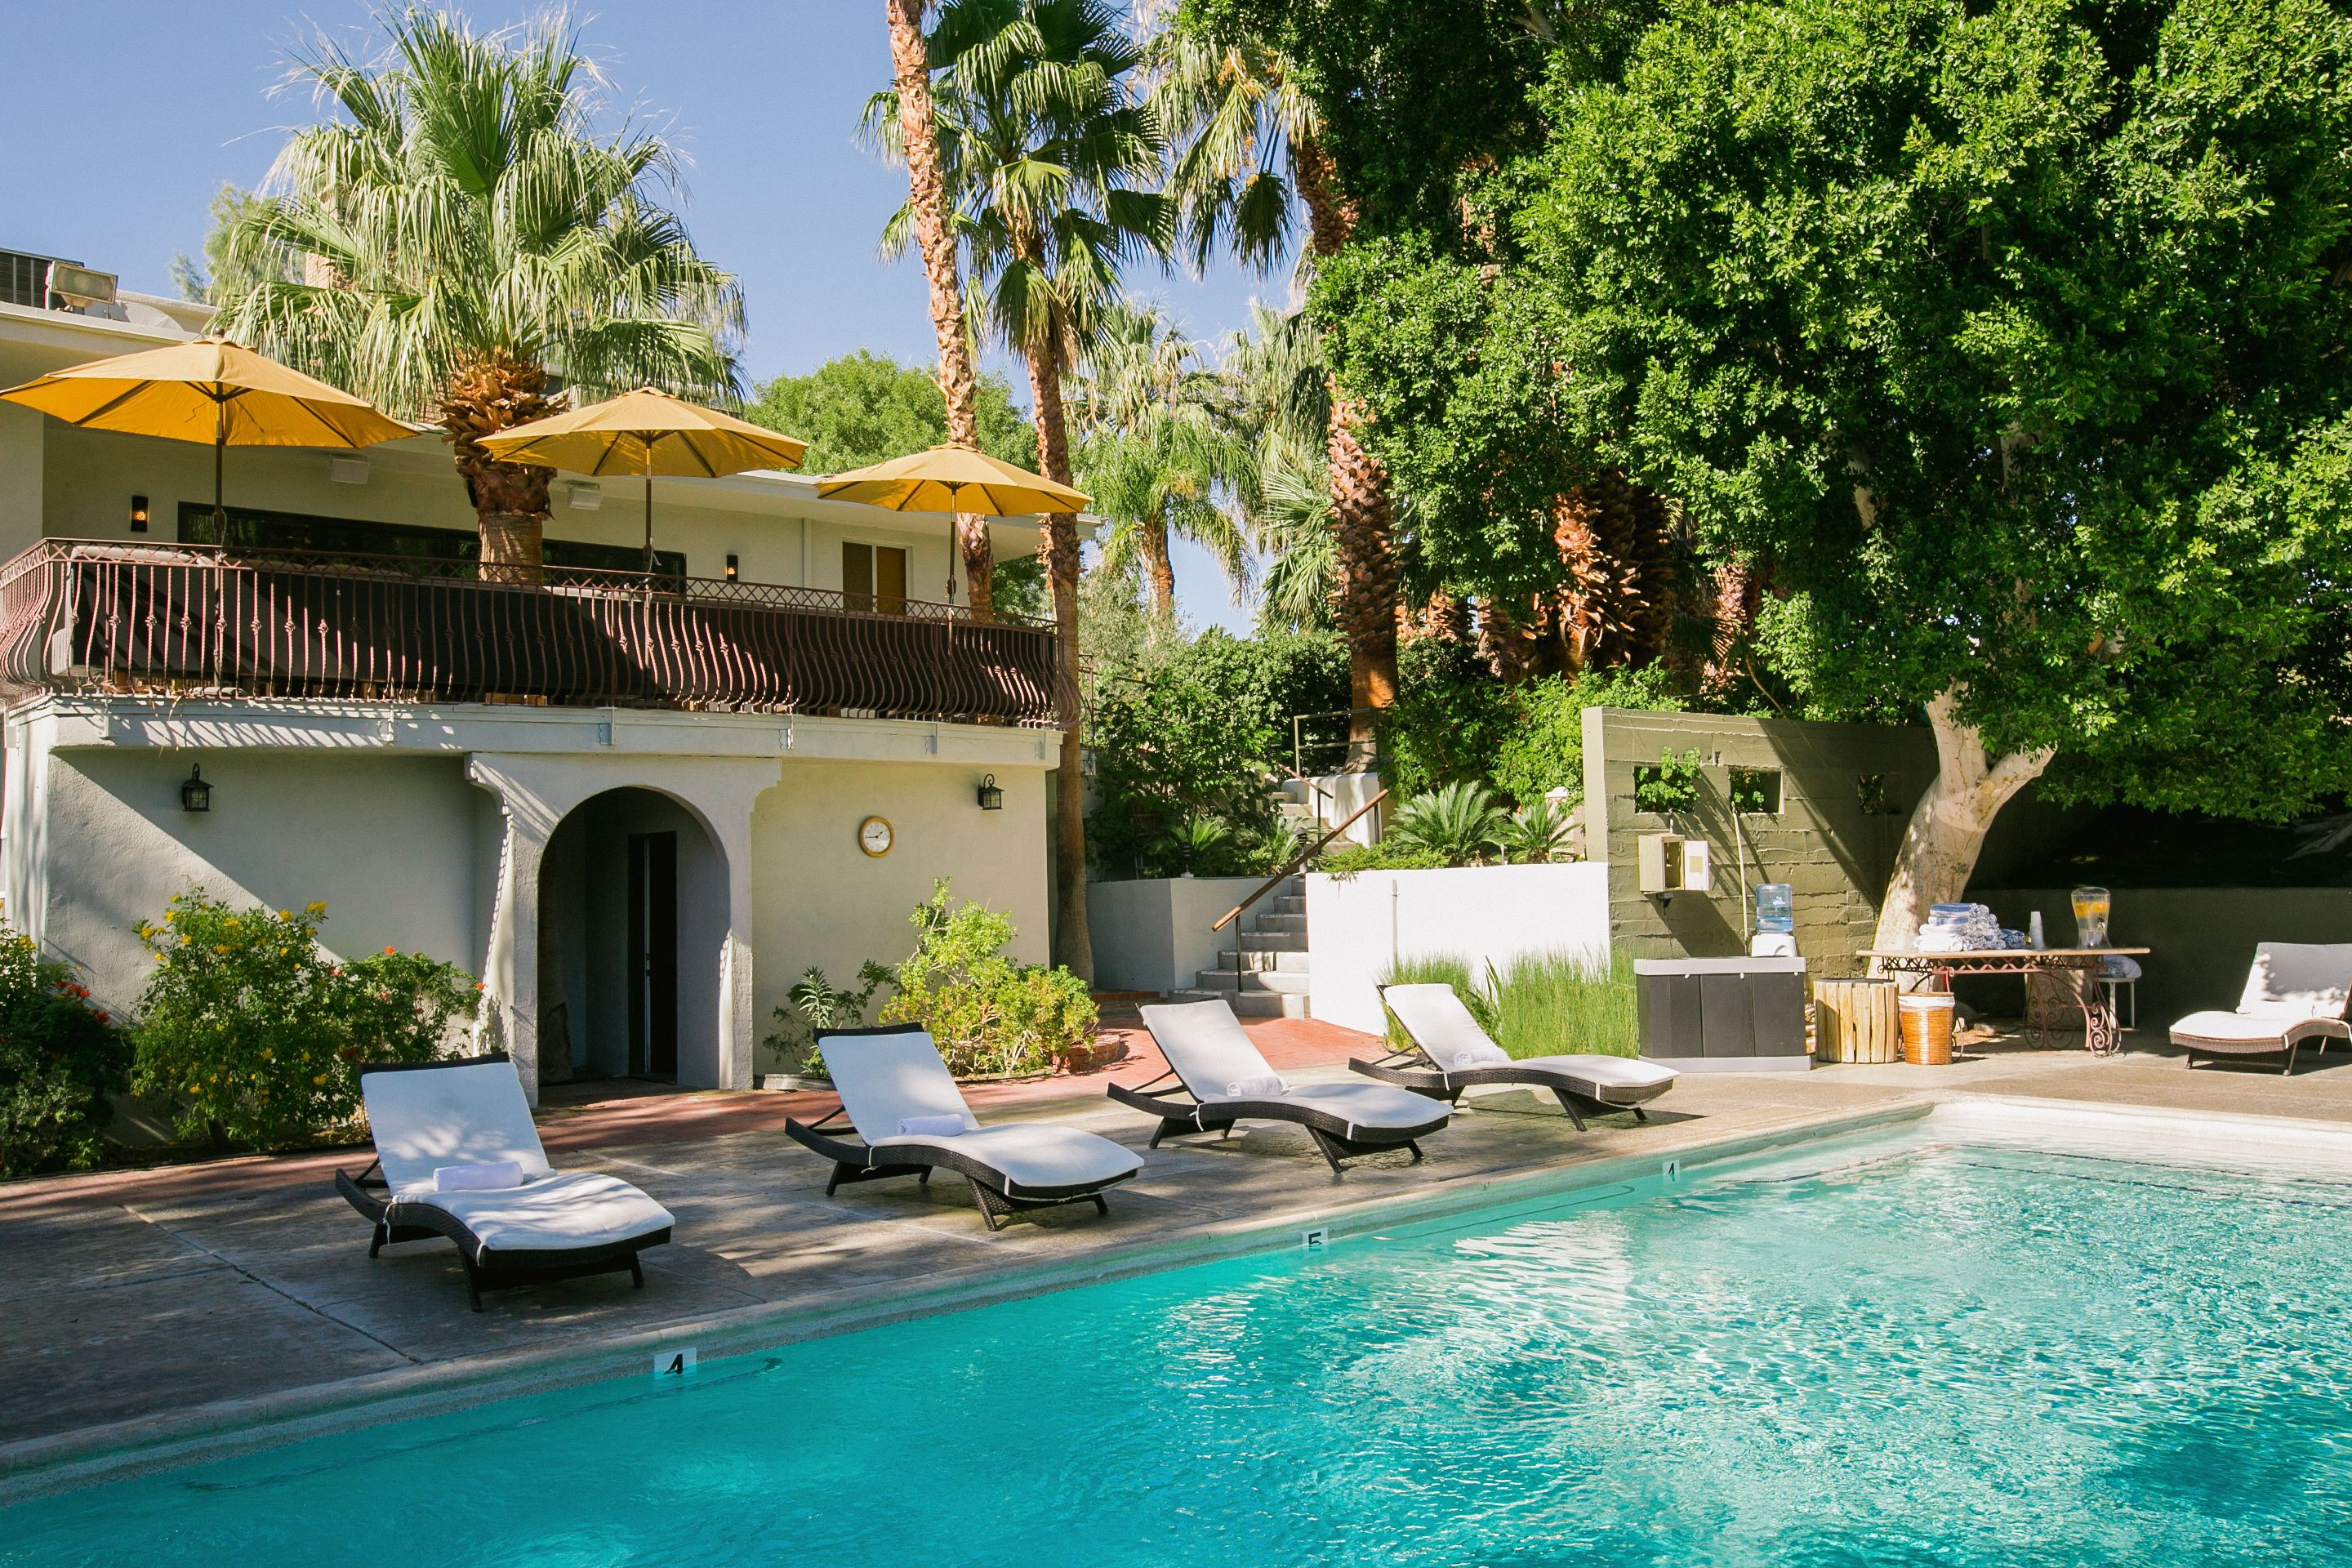 Courtesy of Two Bunch Palms Spa Resort / Expedia